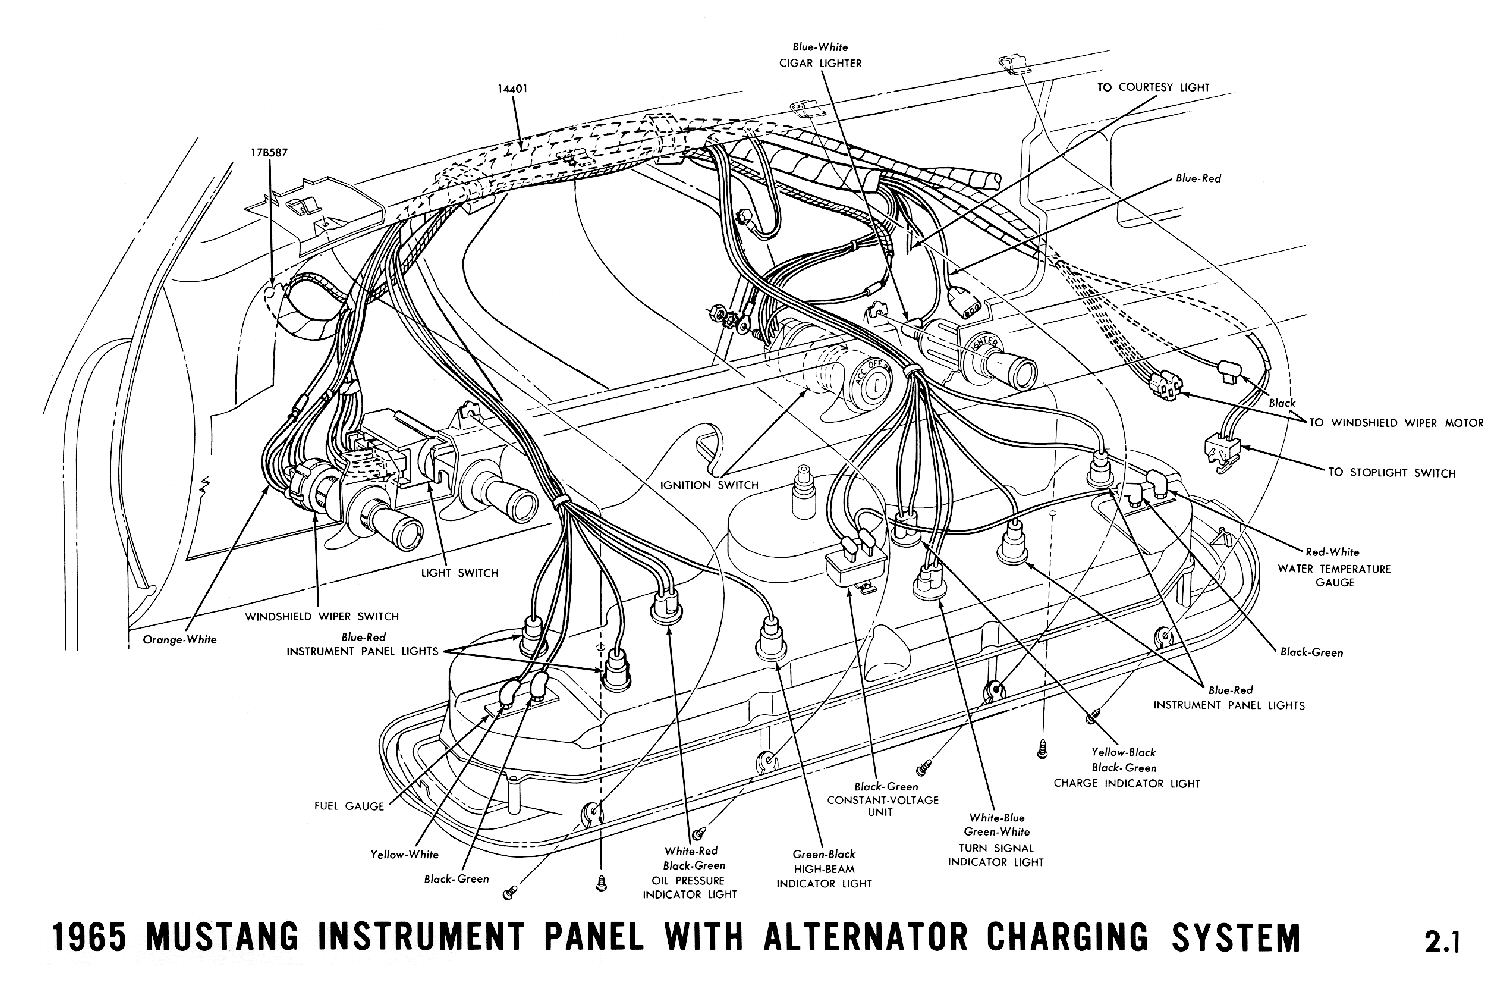 1965 Mustang Wiring Diagrams Average Joe Restoration Toyota Voltage Regulator Diagram 1965a